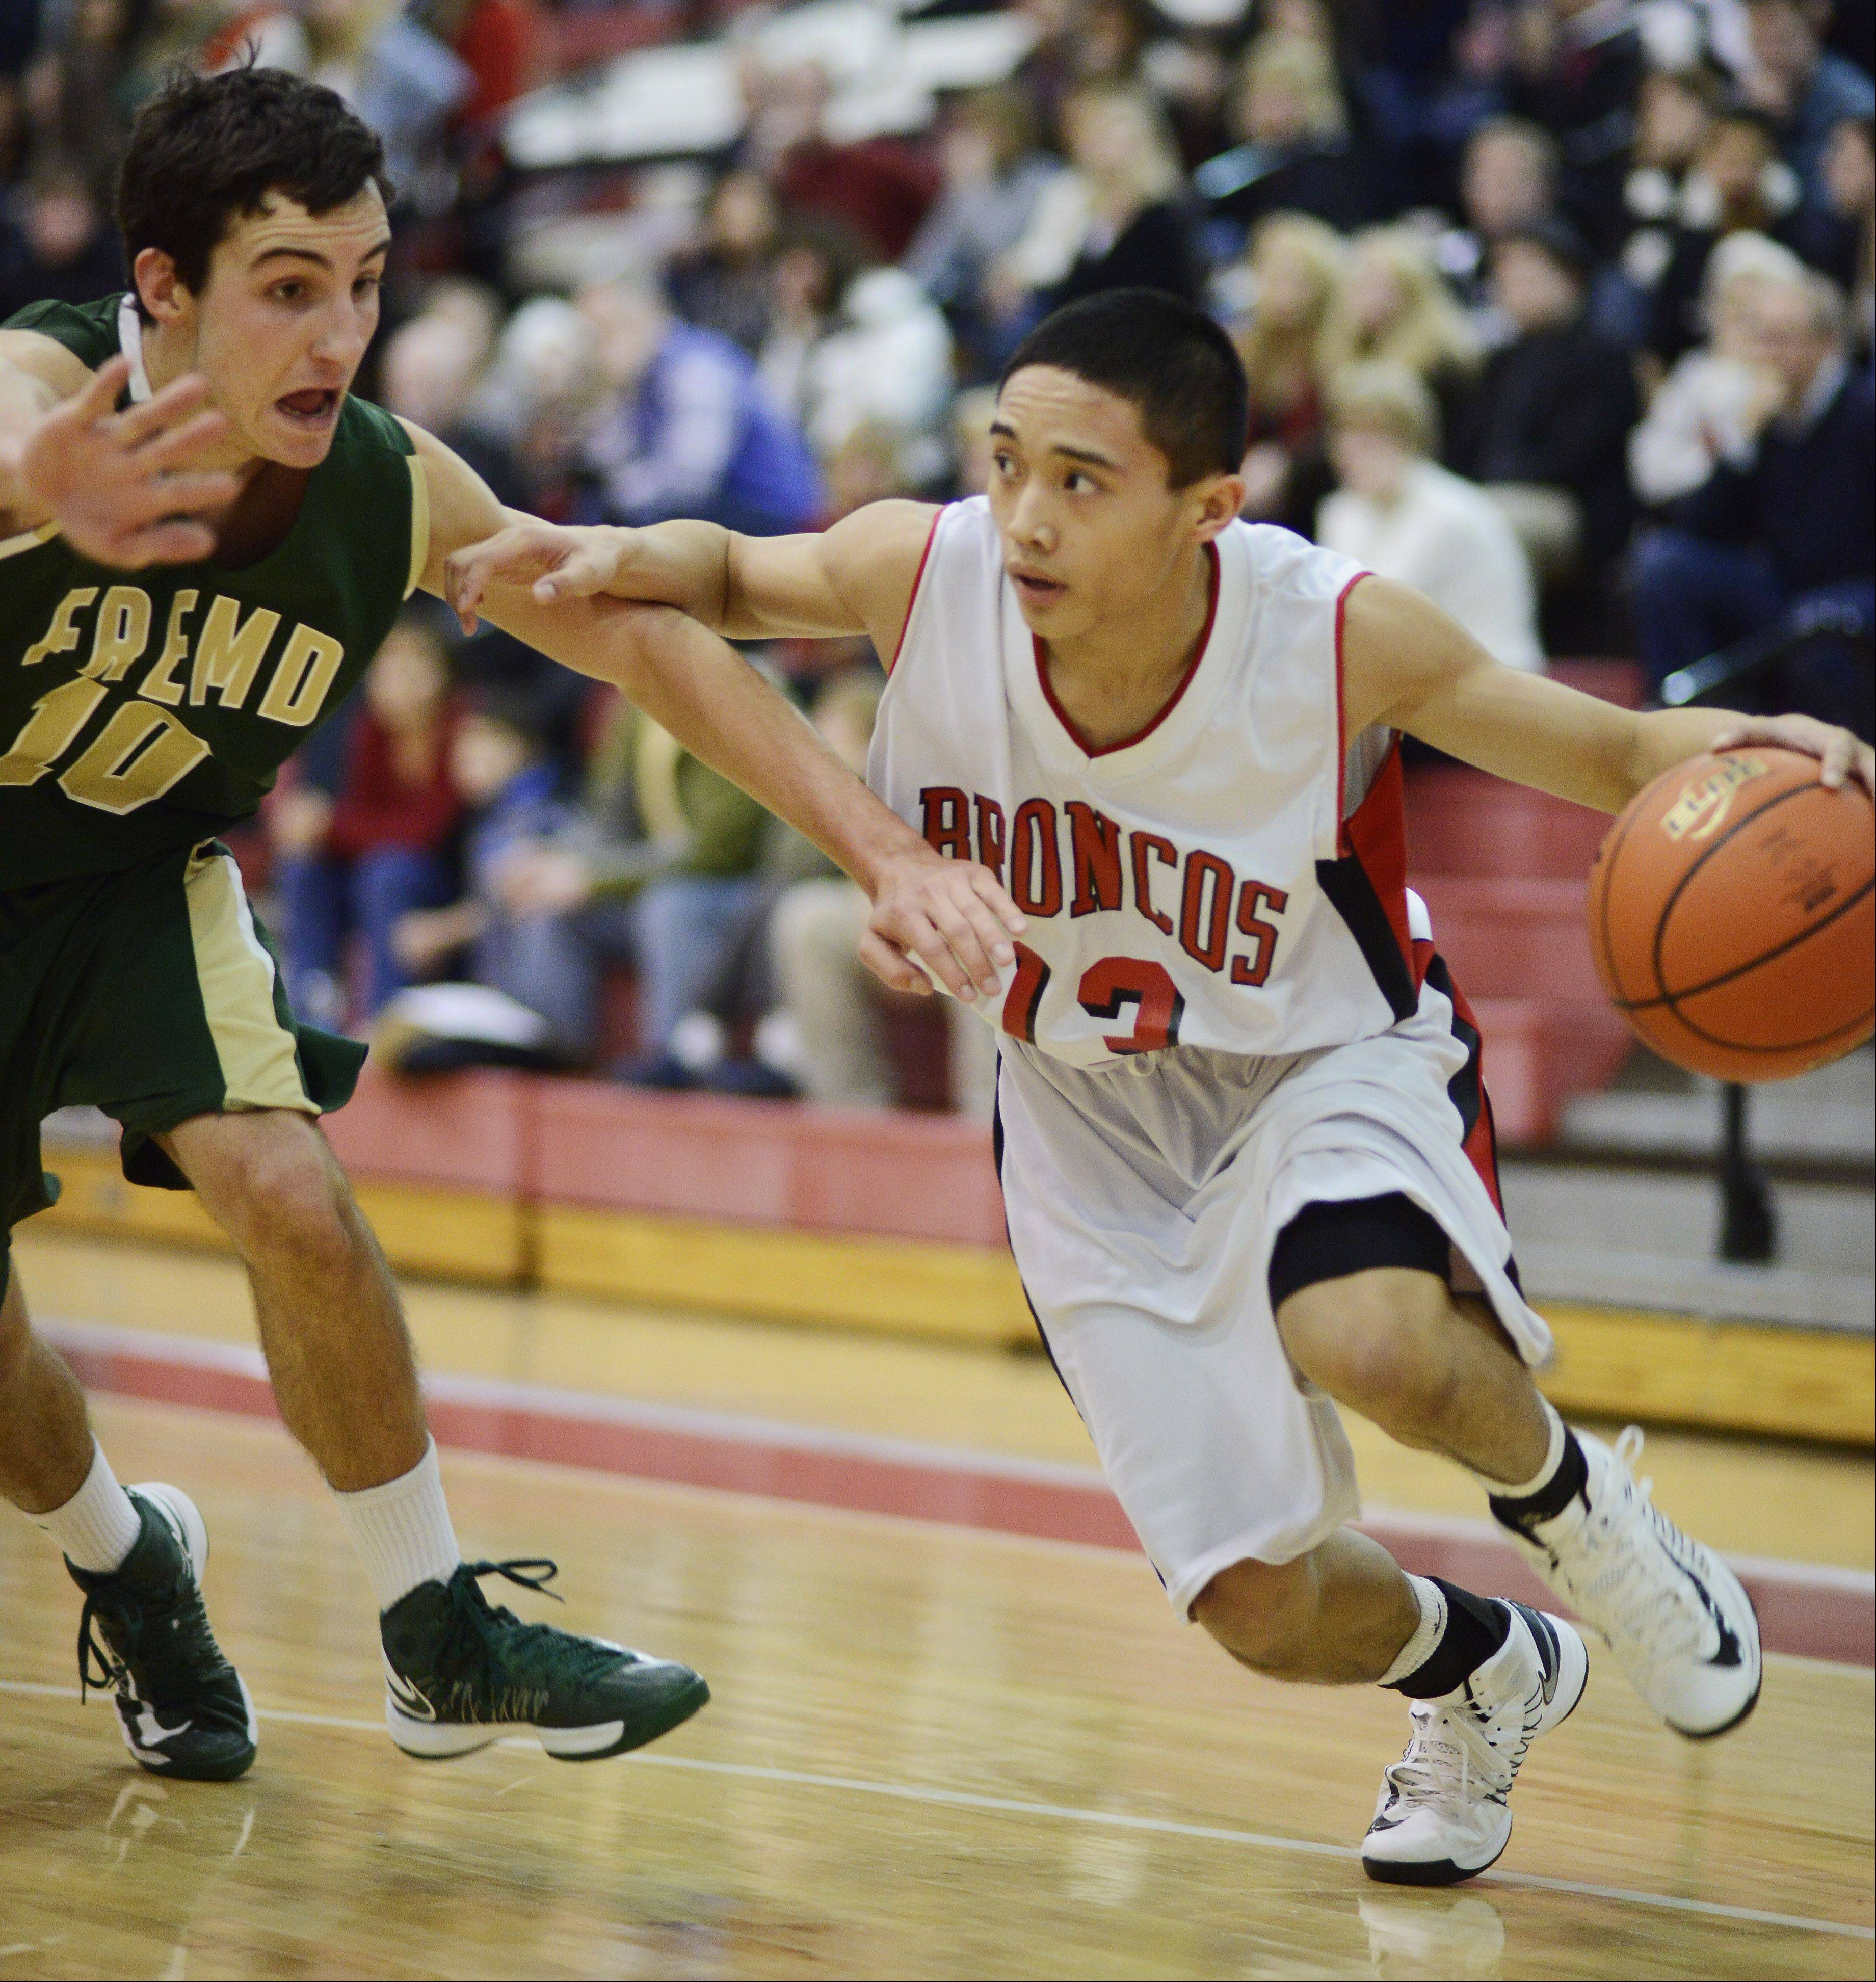 Barrington's Raymond Tolentino, right, looks for an open teammate while being guarded by Fremd's Kevin Kubis.